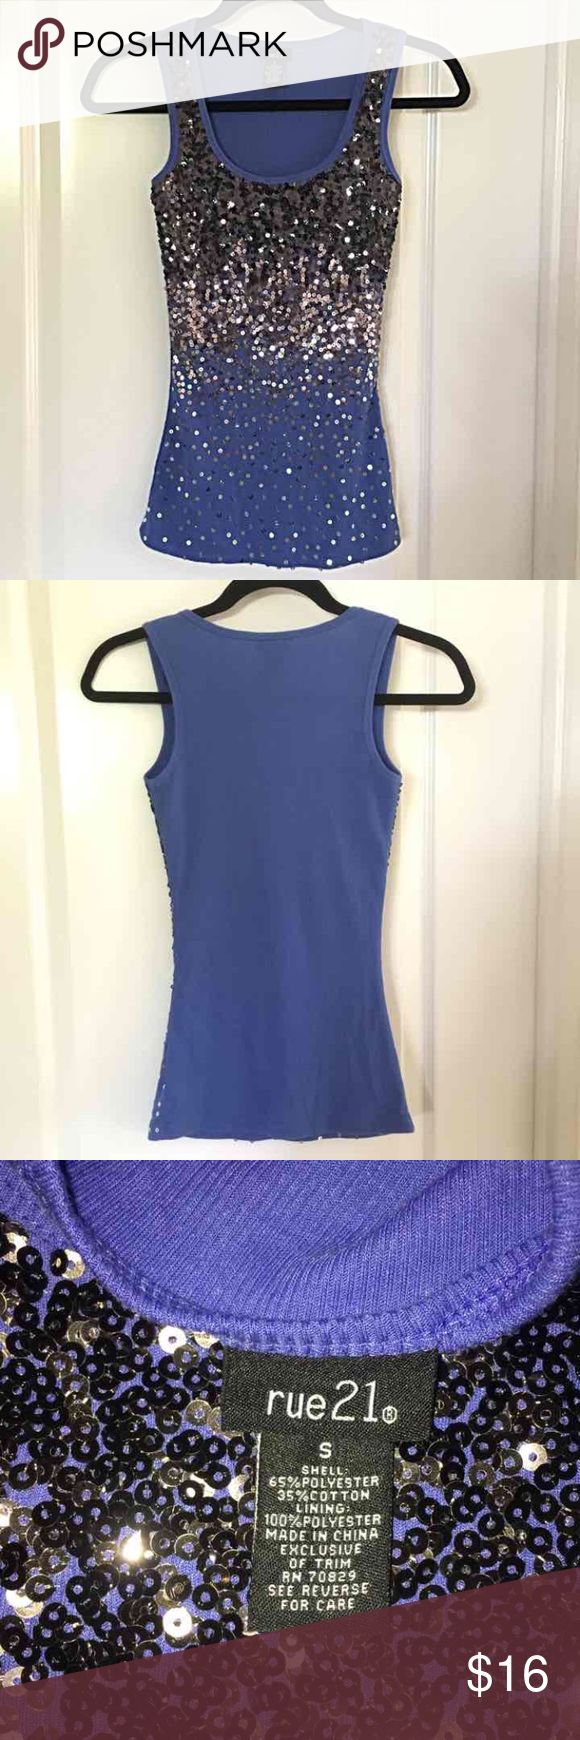 NWOT Rue 21 sequin tank top blue black silver NWOT Rue 21 sequin tank top. Sequins at top are black and fade into silver at bottom. Blue is more of a blue gray. Size Small. Make an offer! Rue 21 Tops Tank Tops